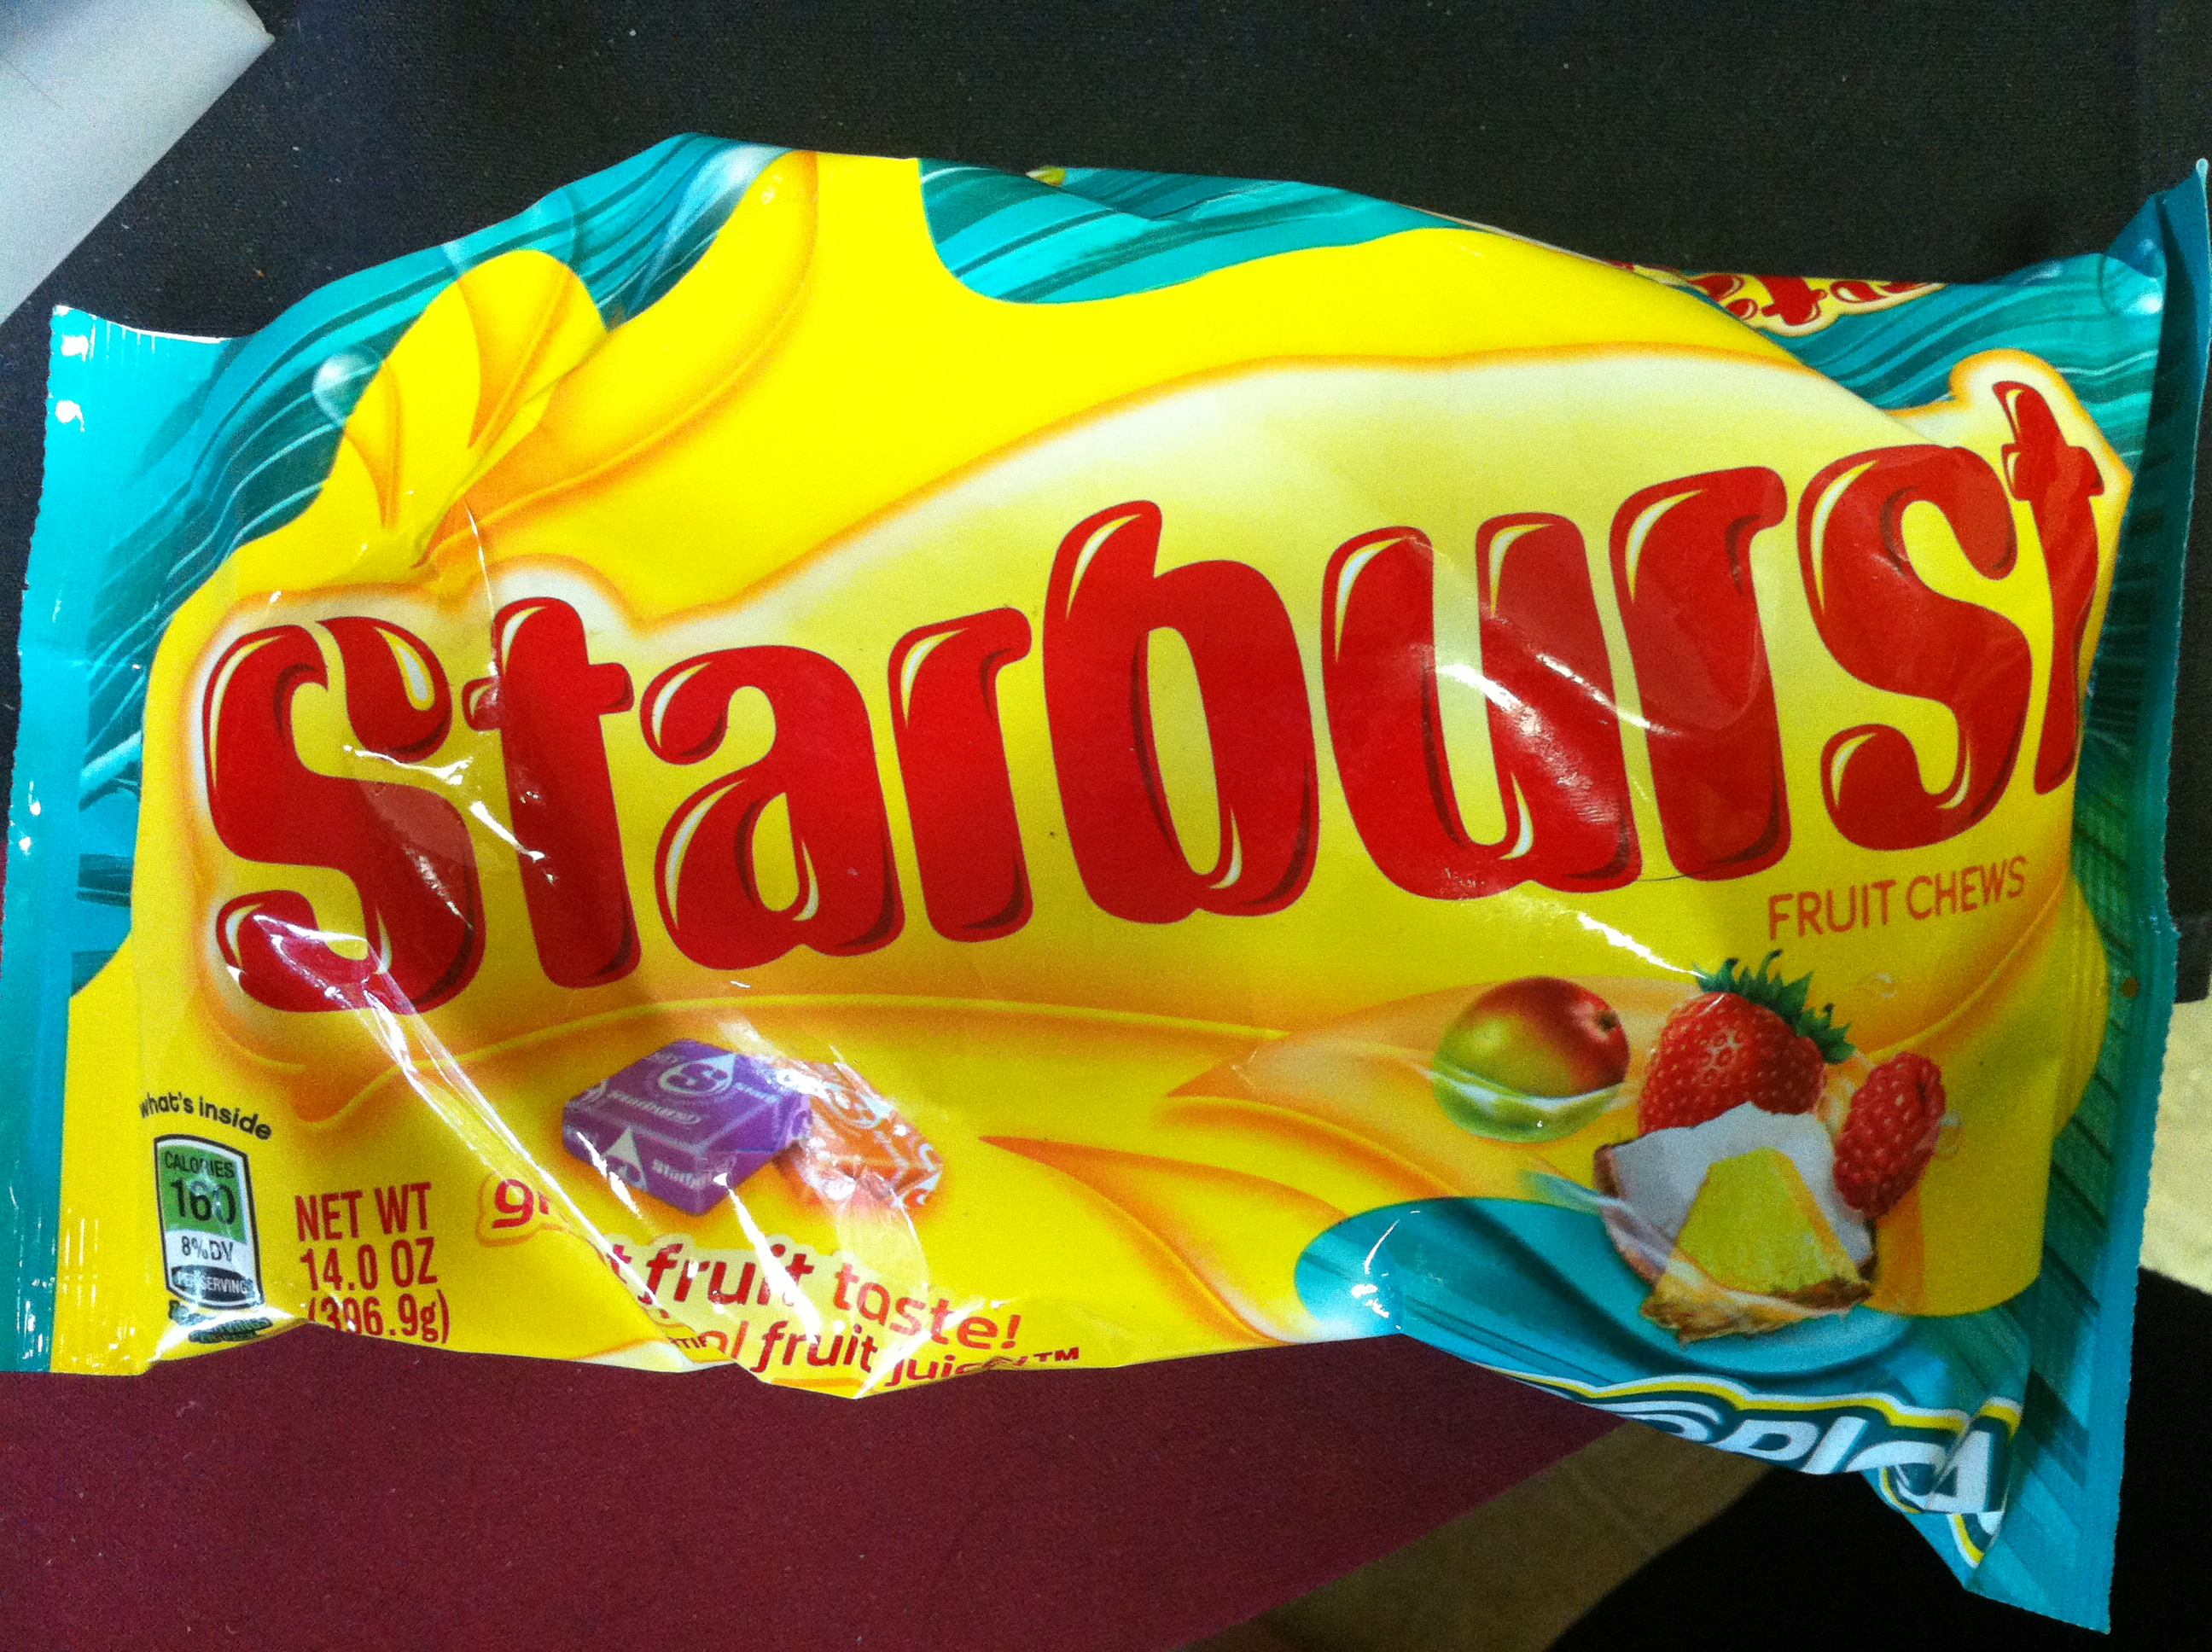 Large bag of Tropical Starbursts